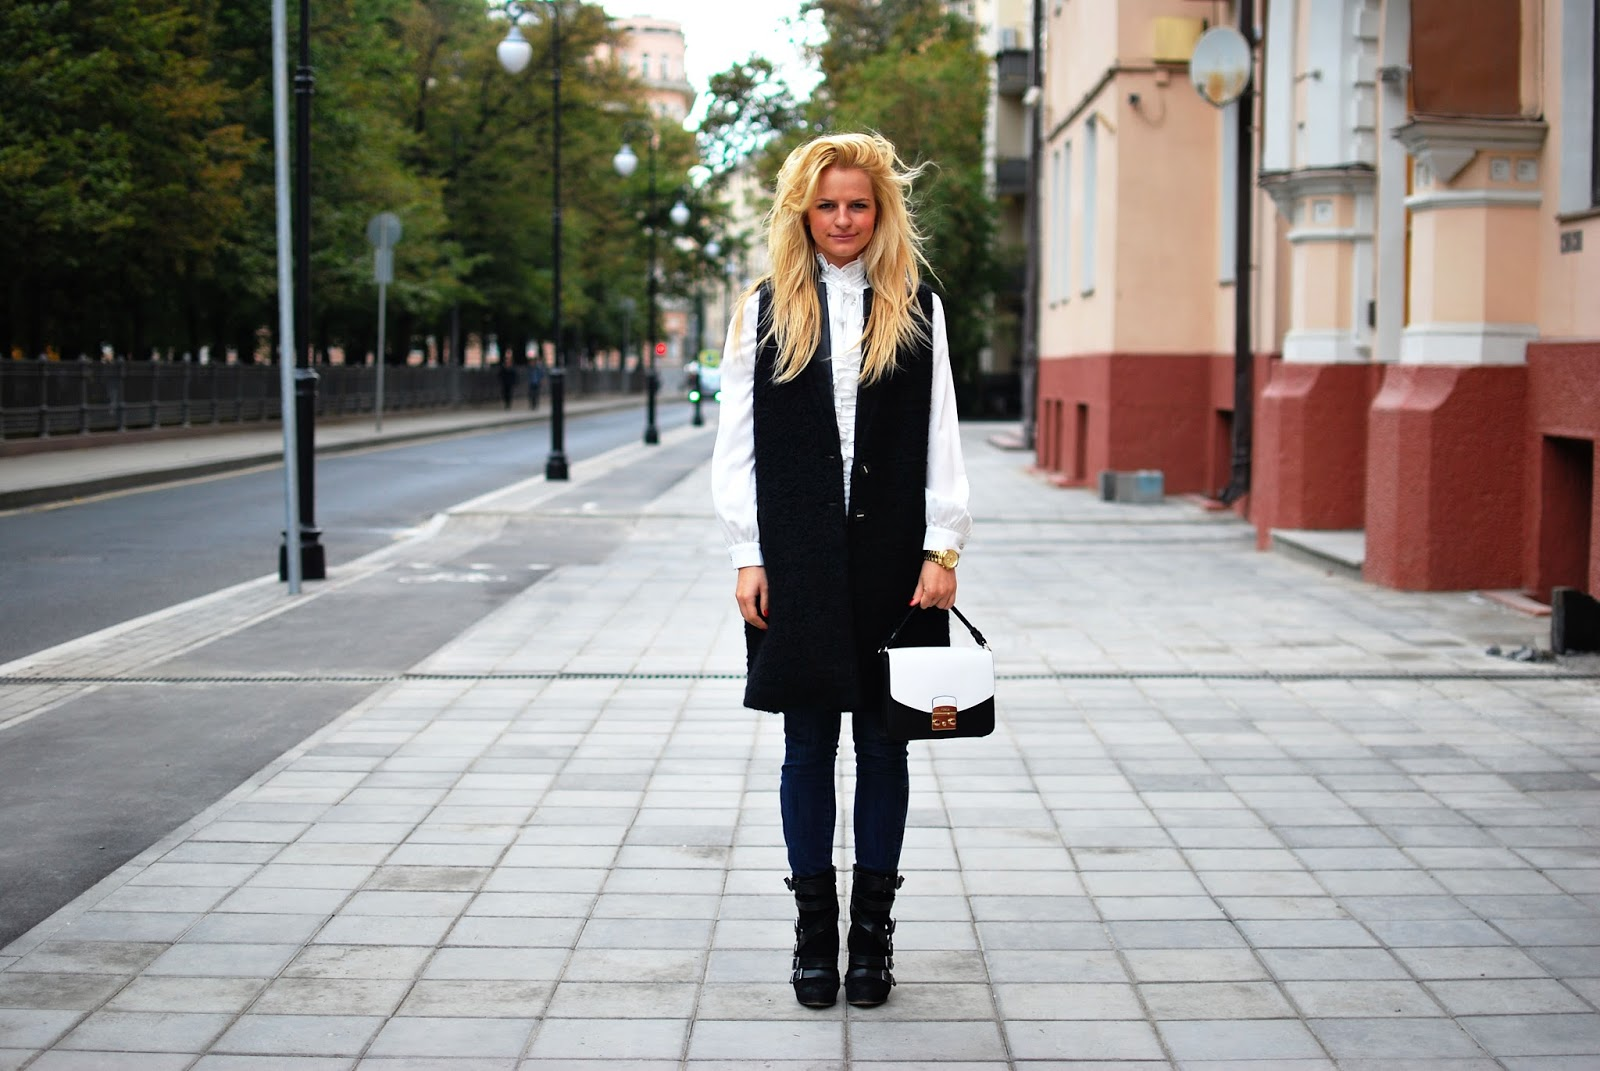 блогер, модный блог, блог о моде, уличная мода 2015, streetfashion, street style, fashion blog russia, fashion foto 2016, fashion trends autumn